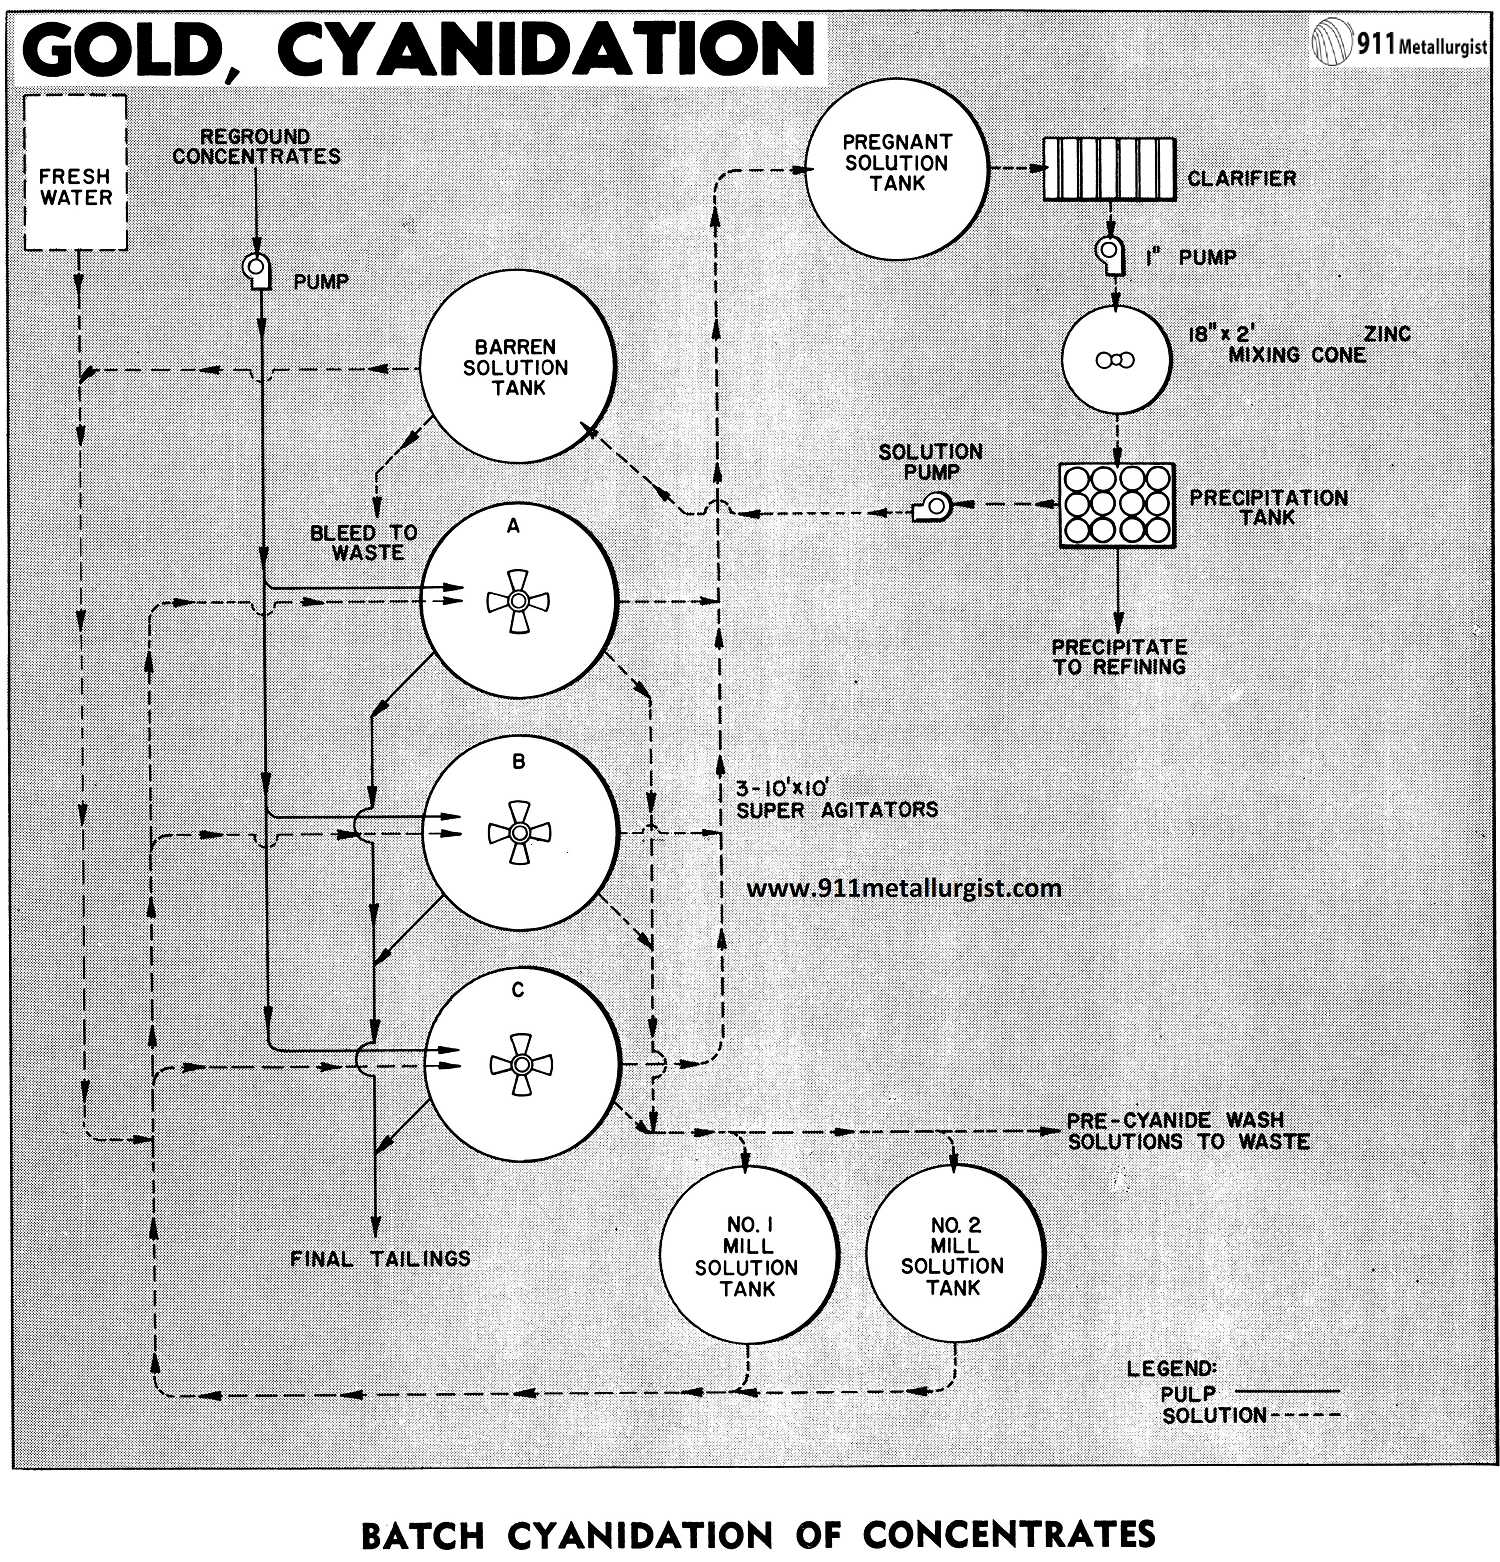 Batch Cyanidation of Concentrates